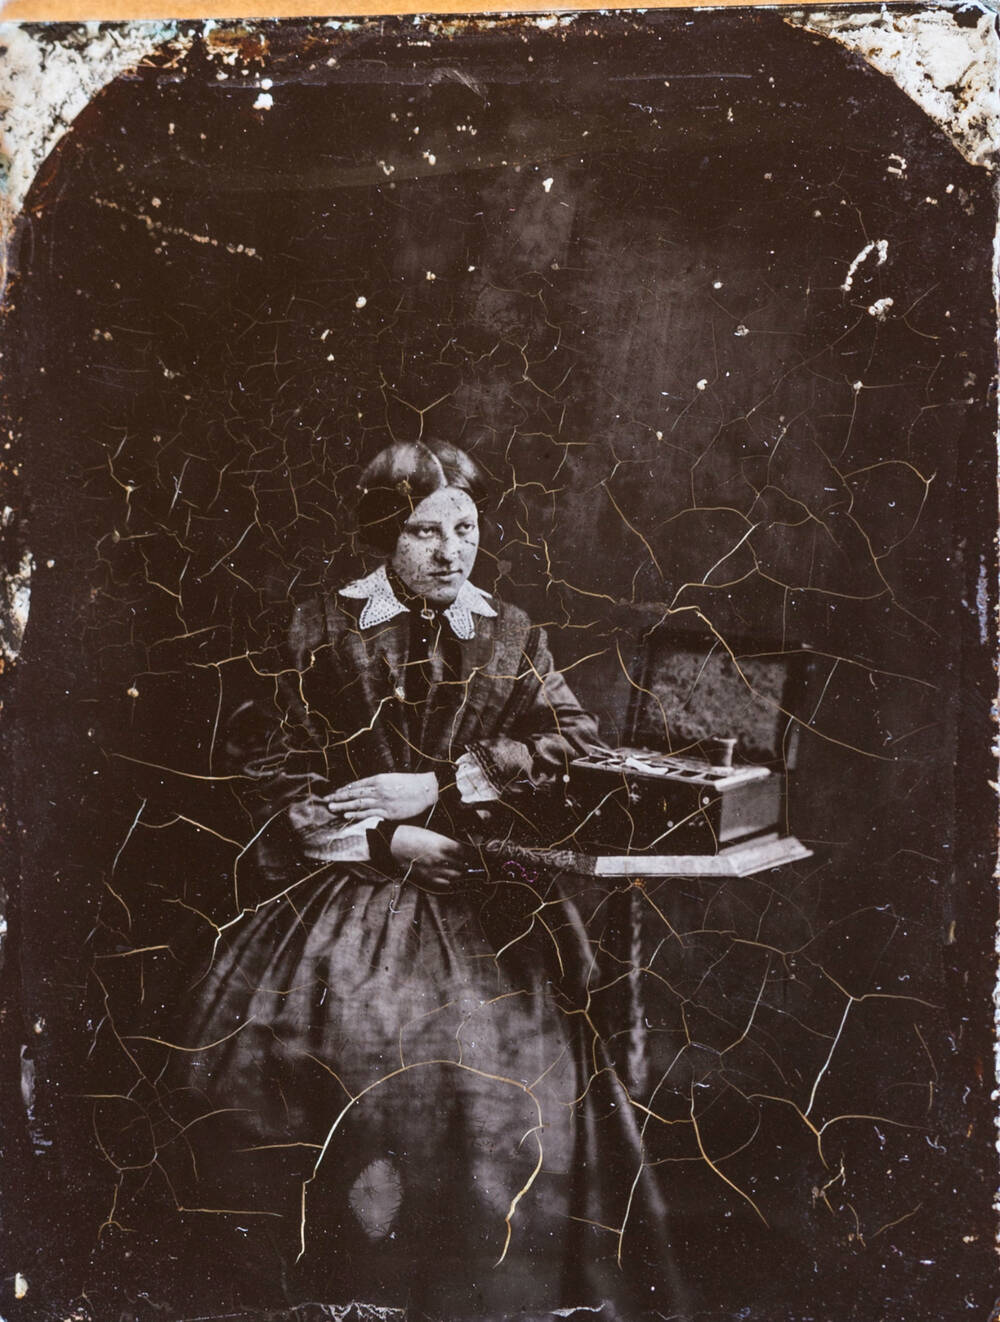 A black and white photo of a young woman in a black dress and lace collar sitting by a table. The photo is cracked.